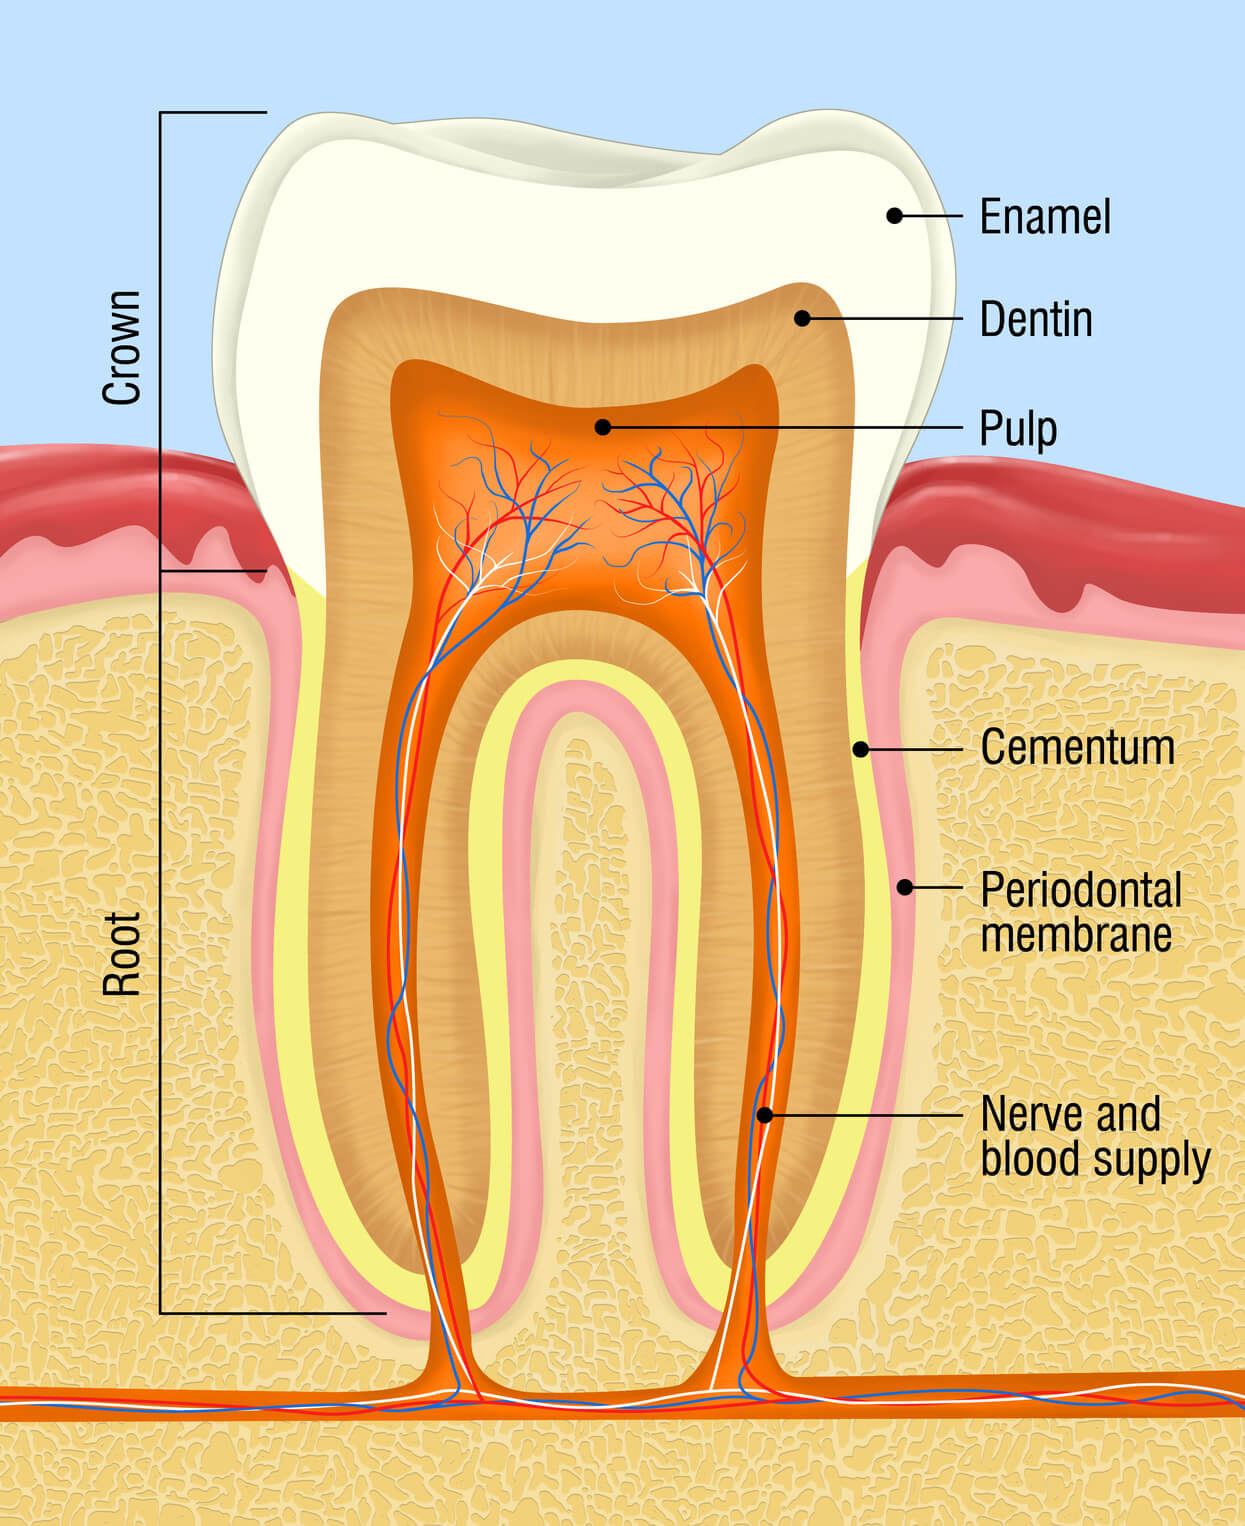 cross-section of the human teeth